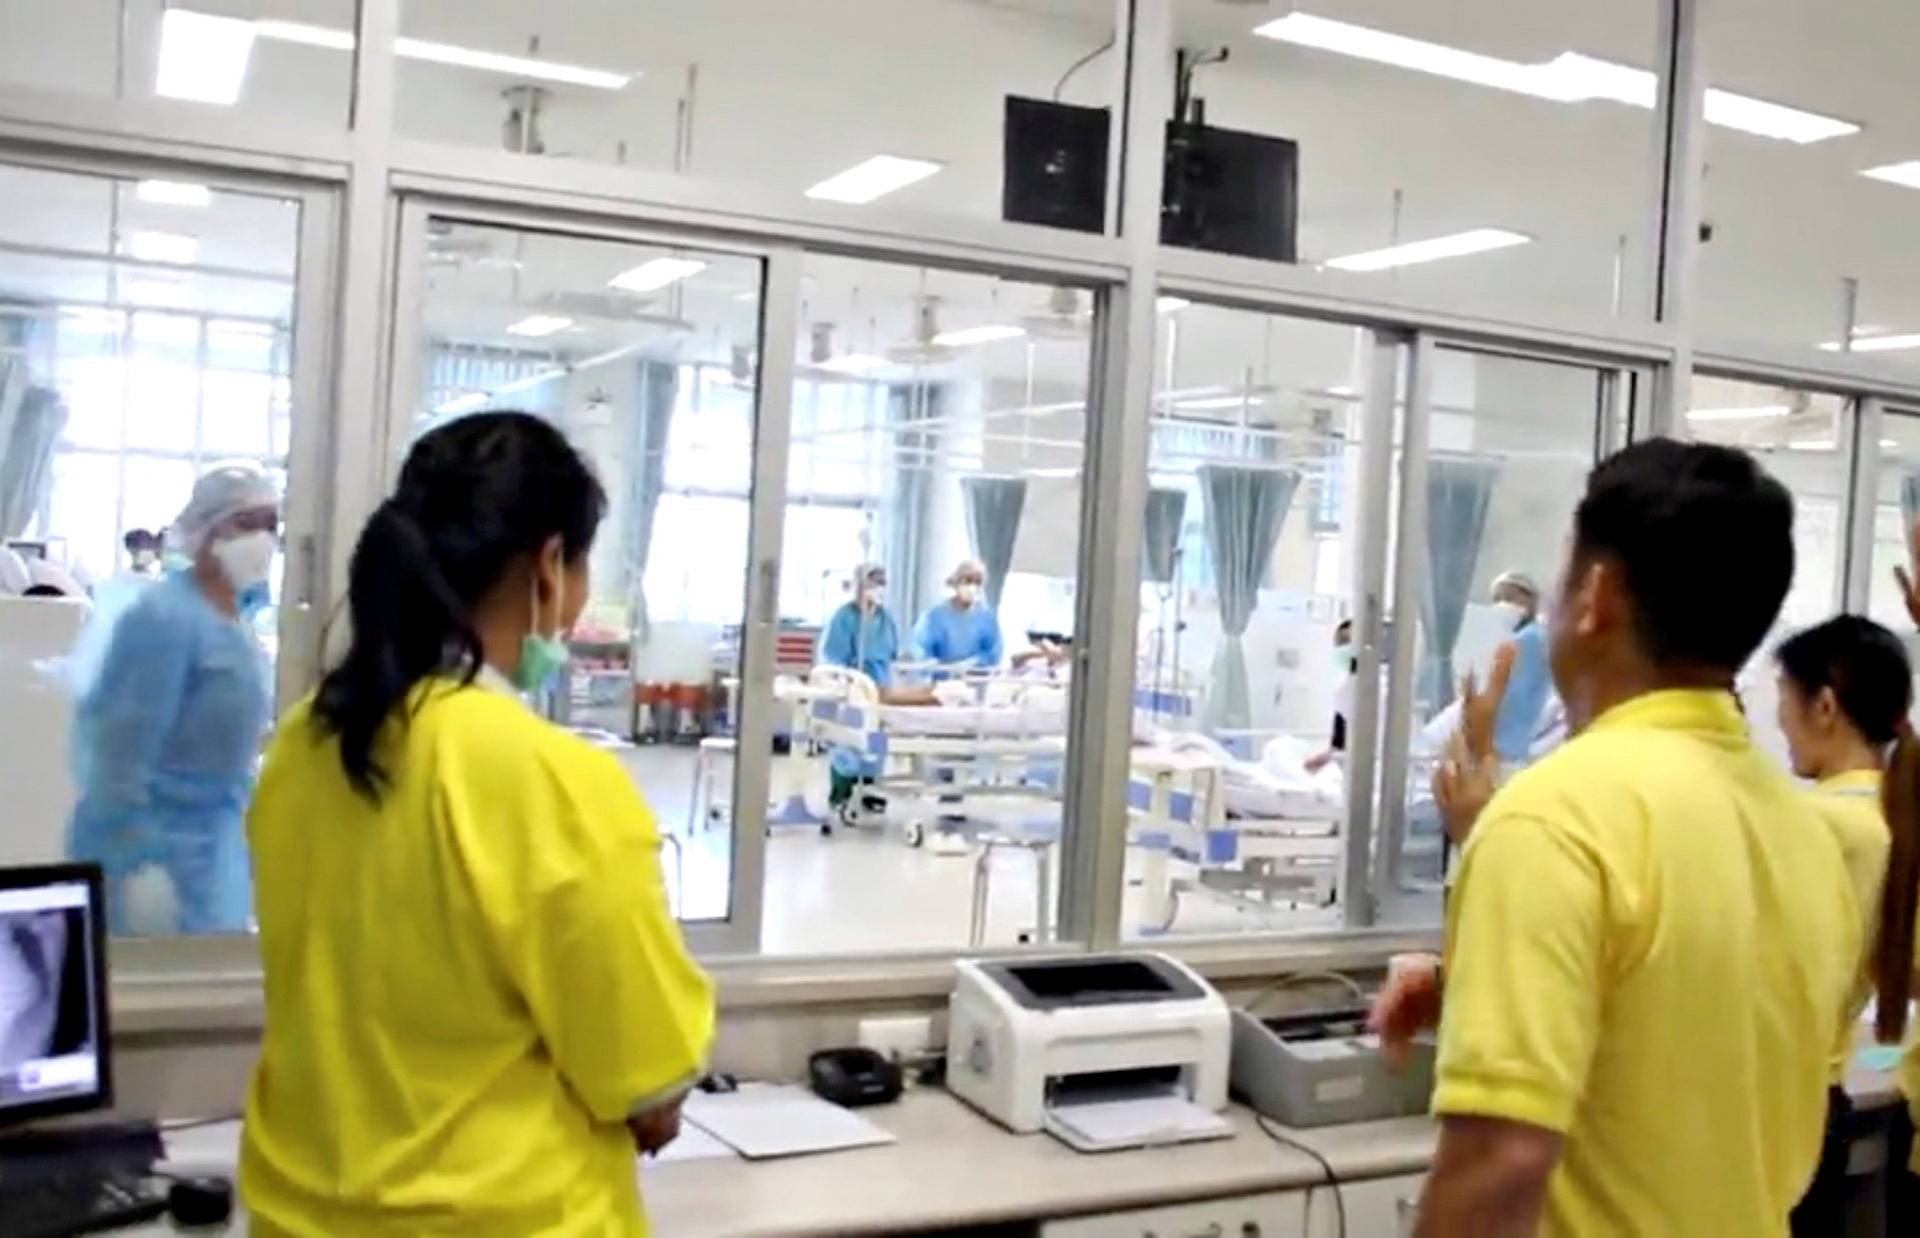 FILE PHOTO: A screen grab shows people looking through glass at the boys rescued from the Thai cave at a hospital in Chiang Rai